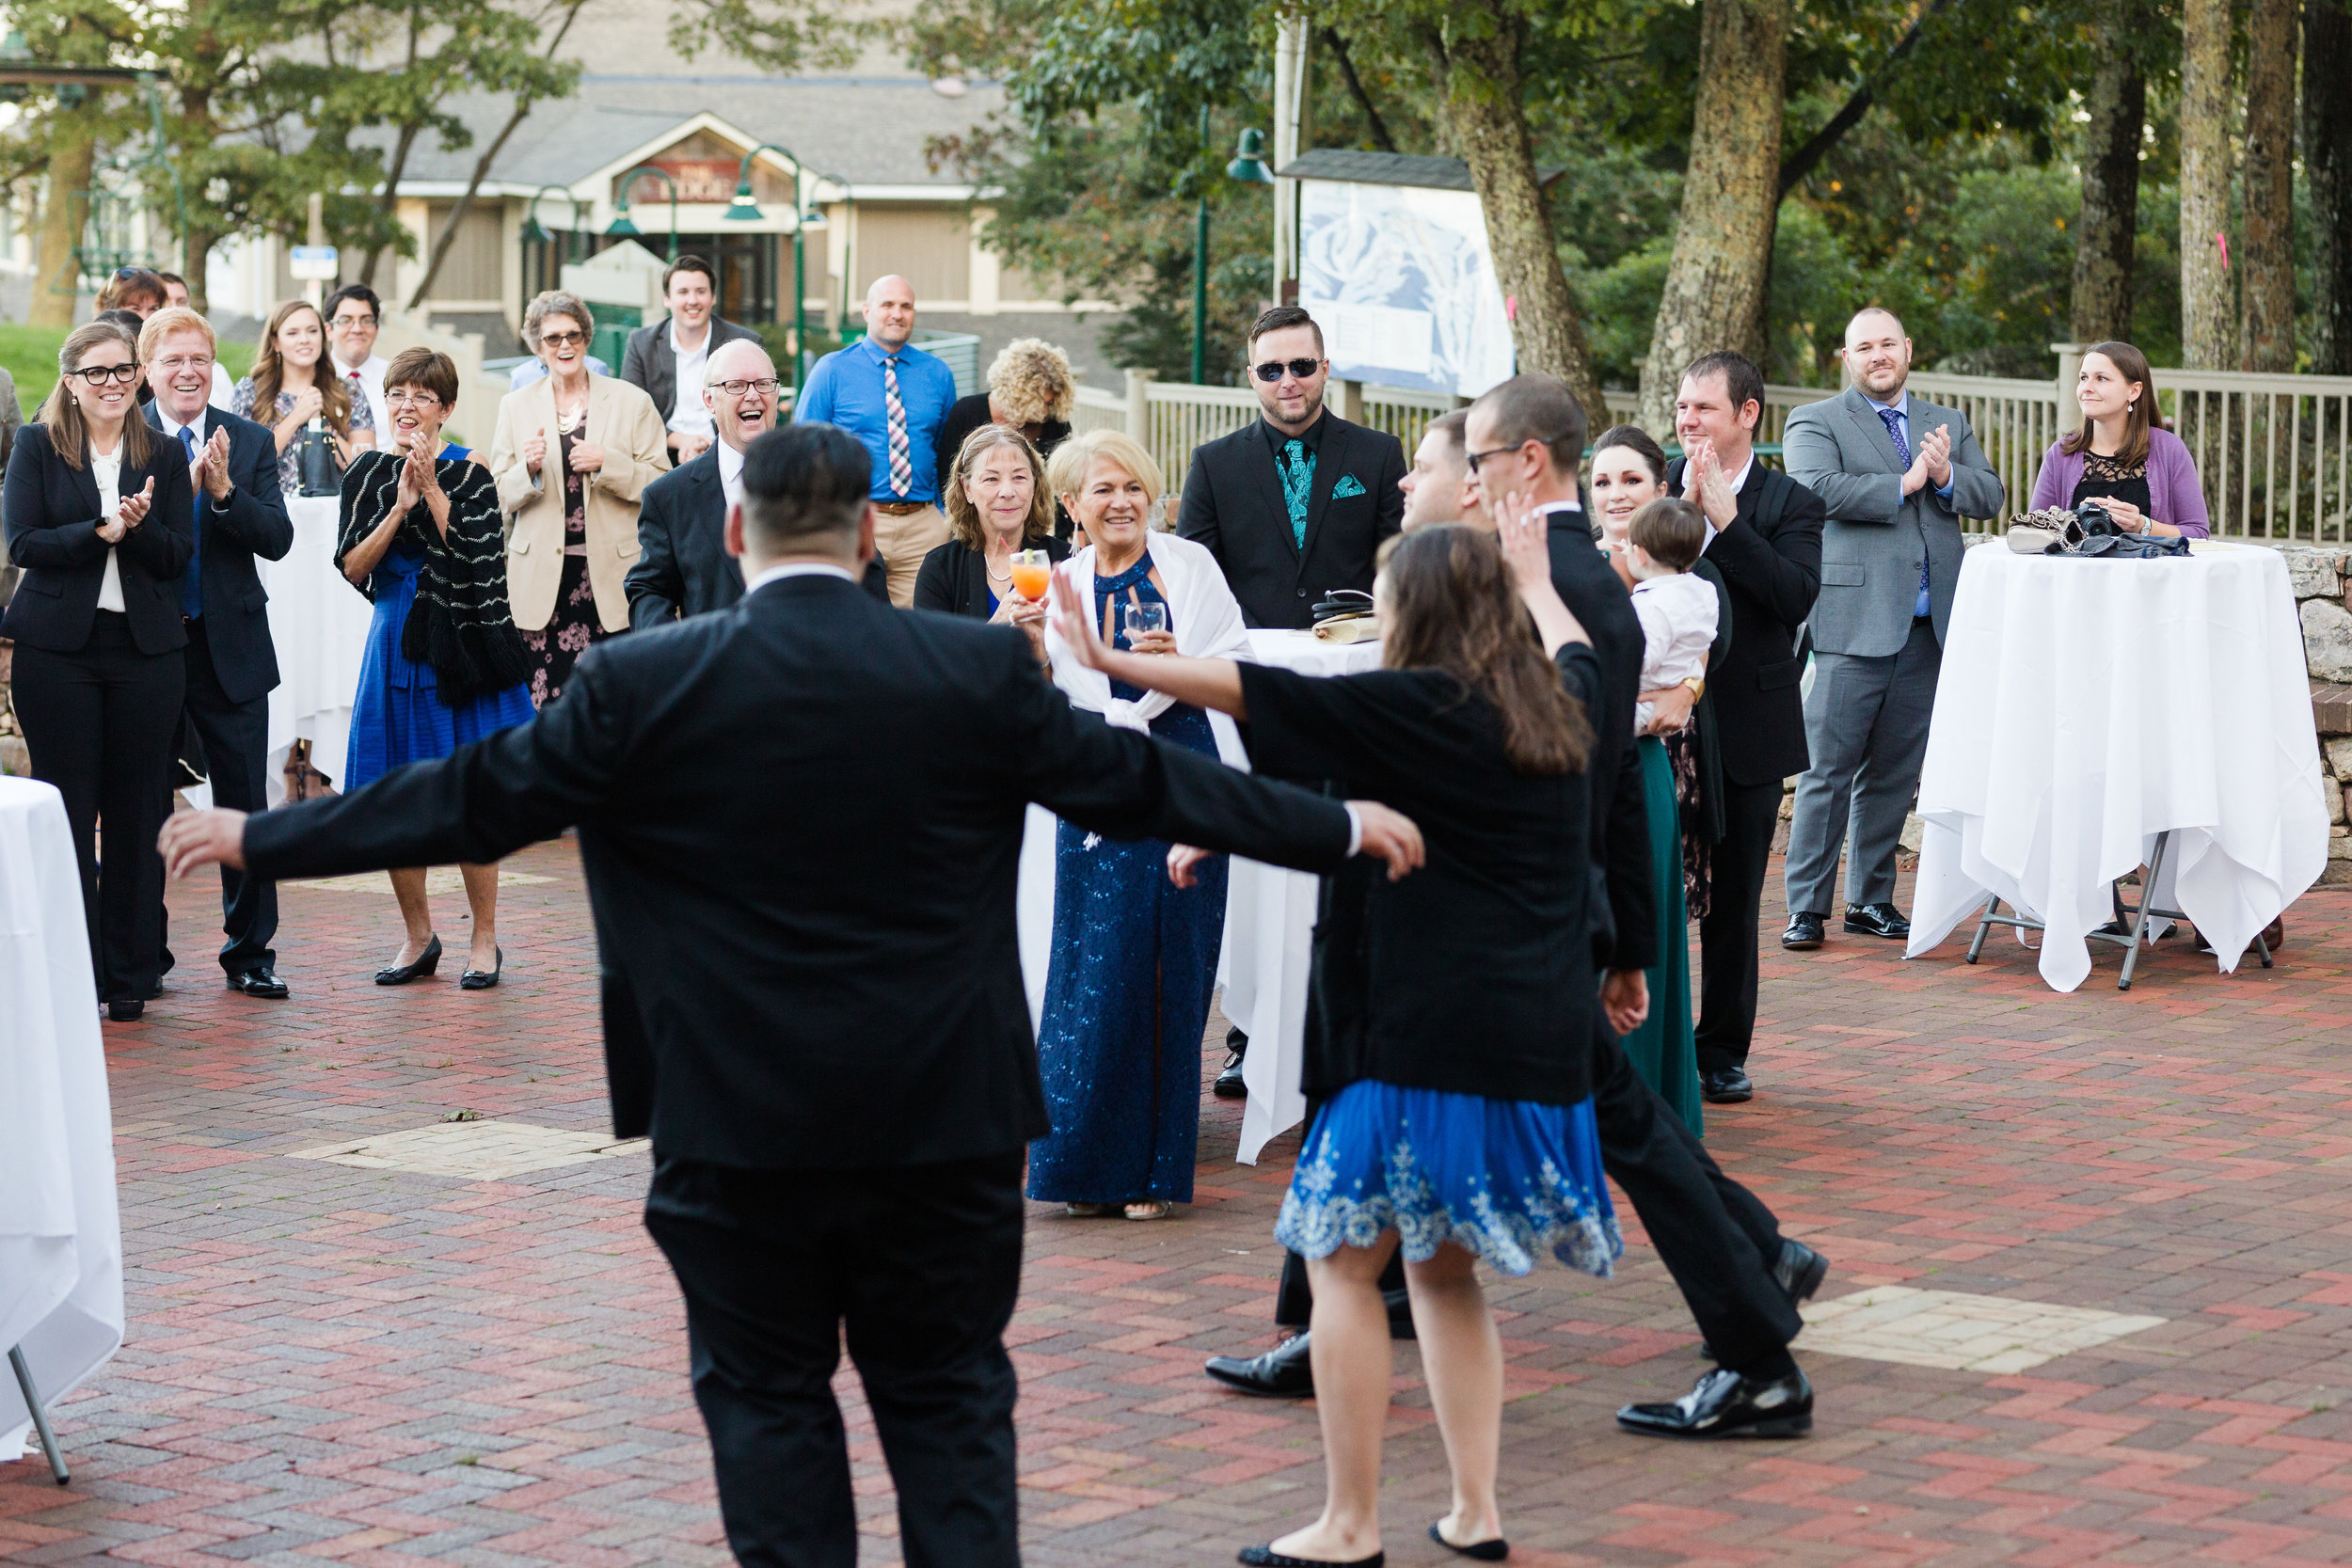 Wintergreen wedding ben brandon-103.jpg